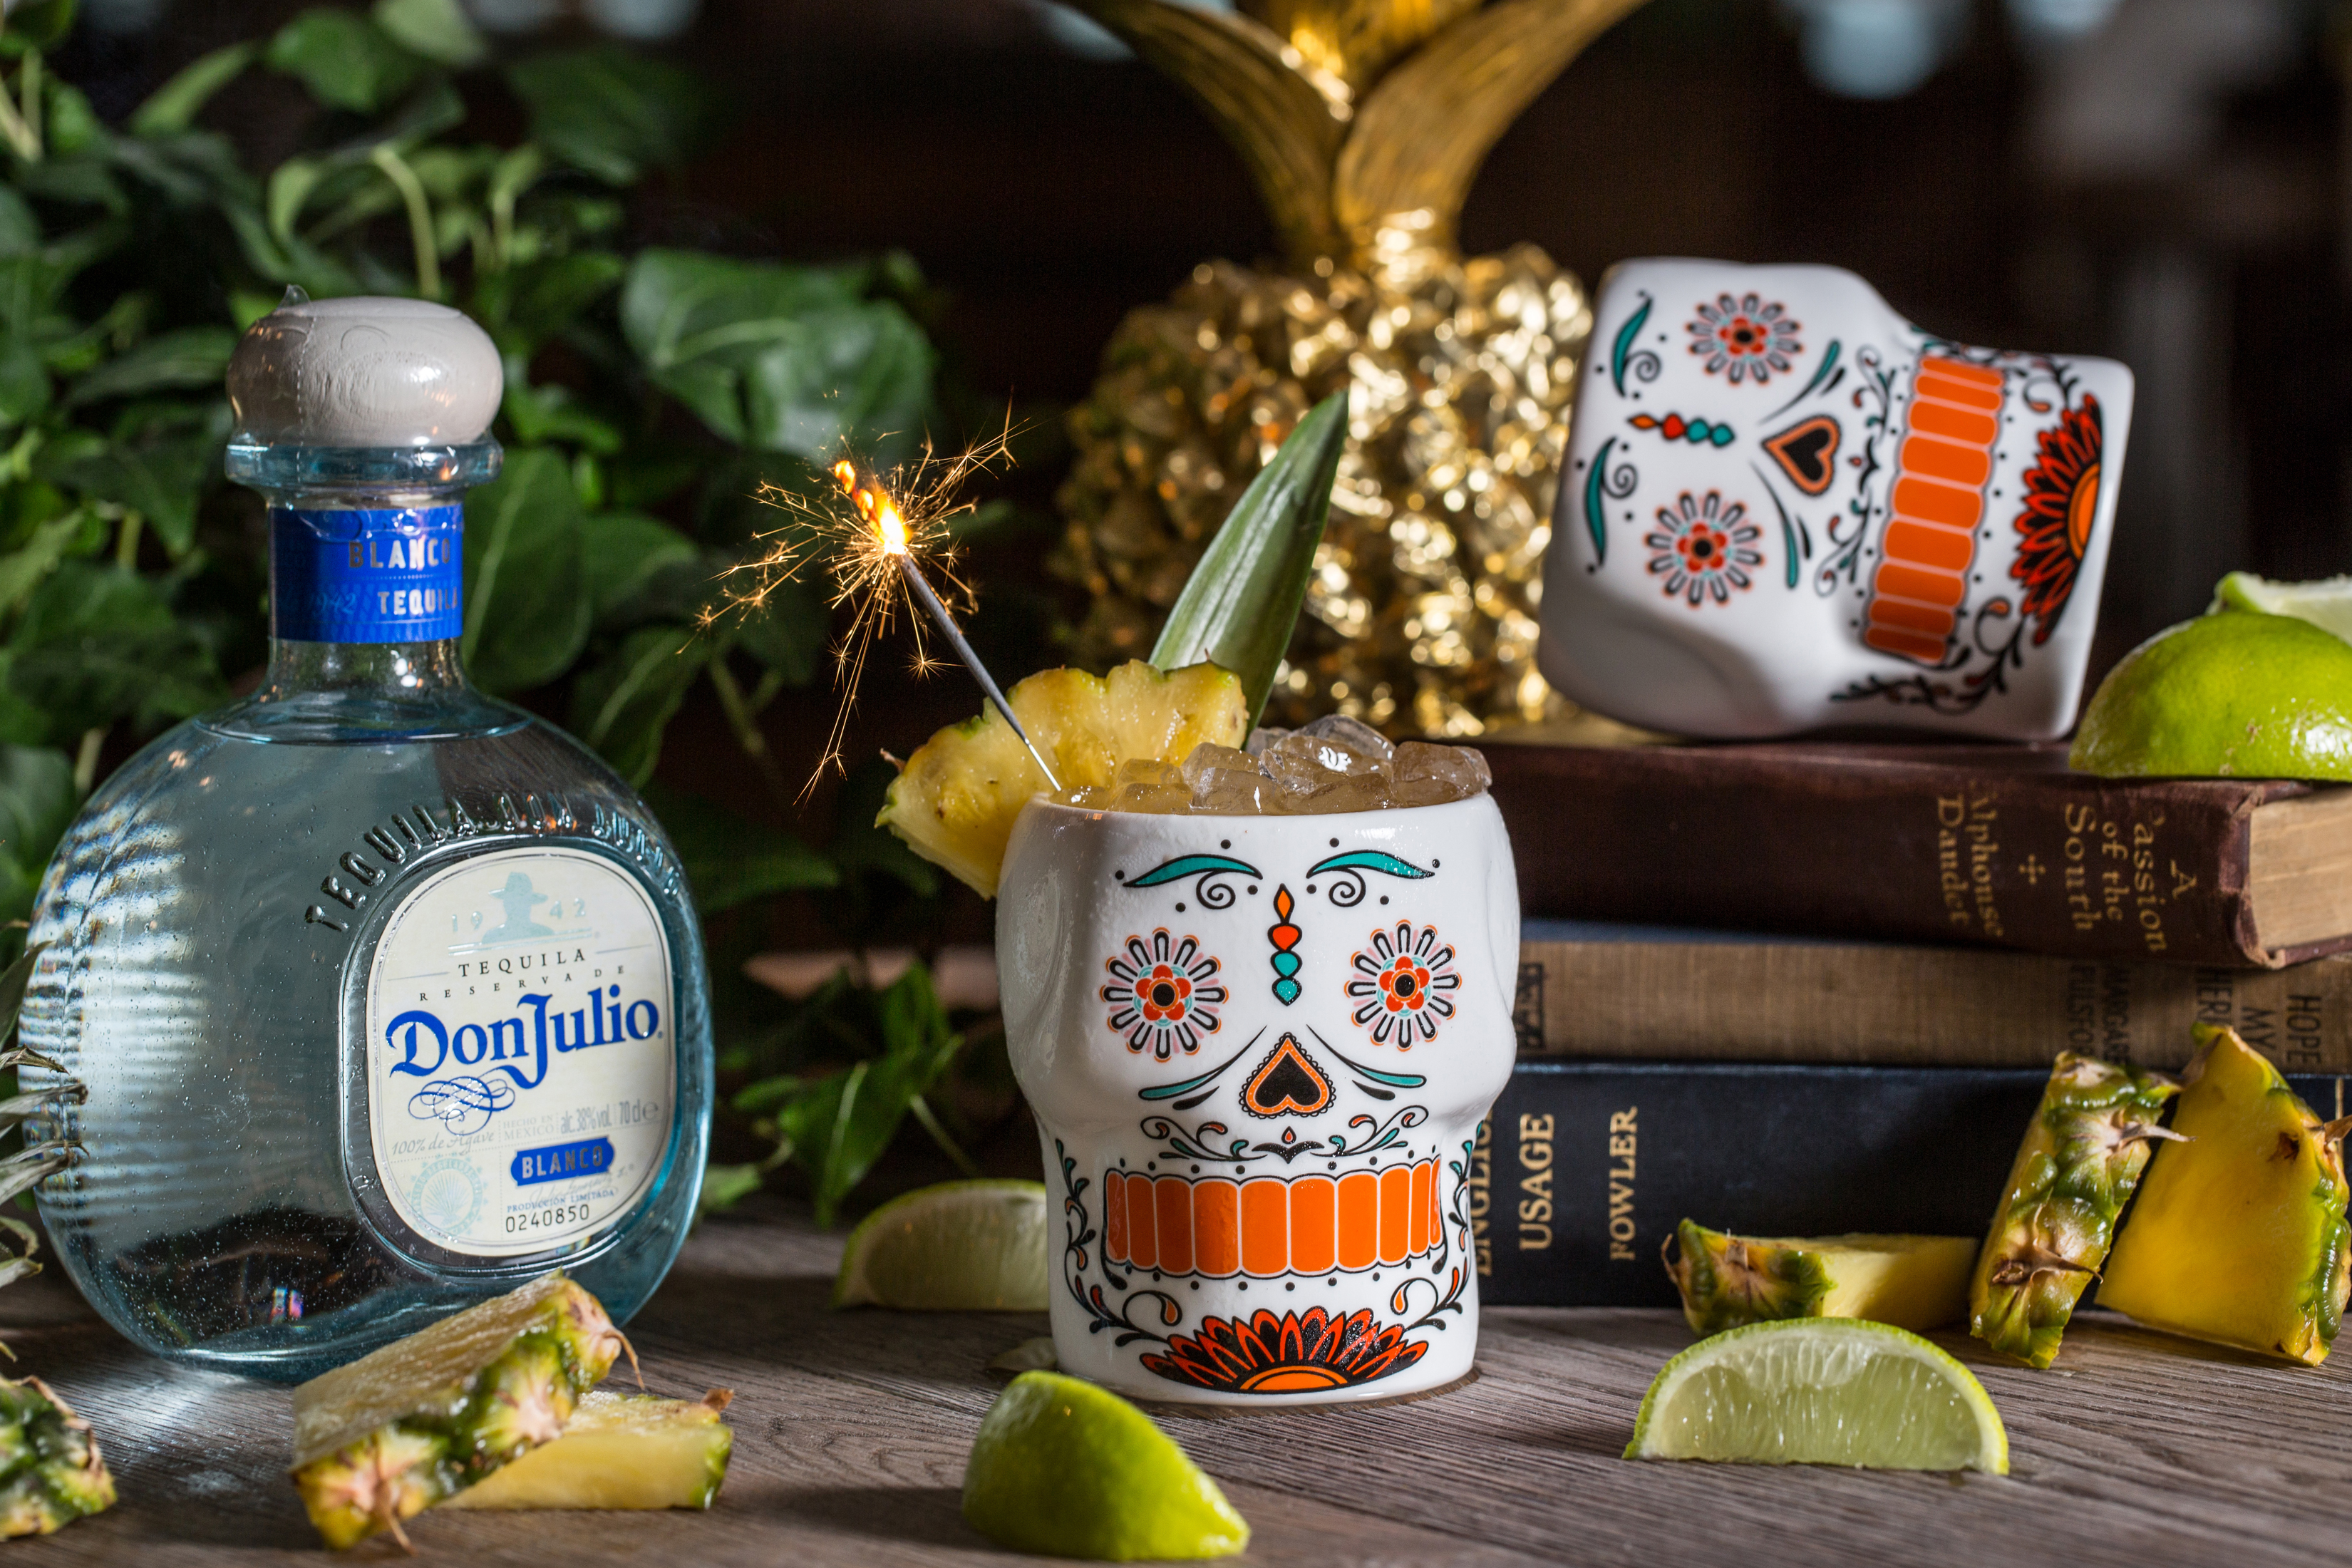 cocktail with Don julio tequila and sparklers